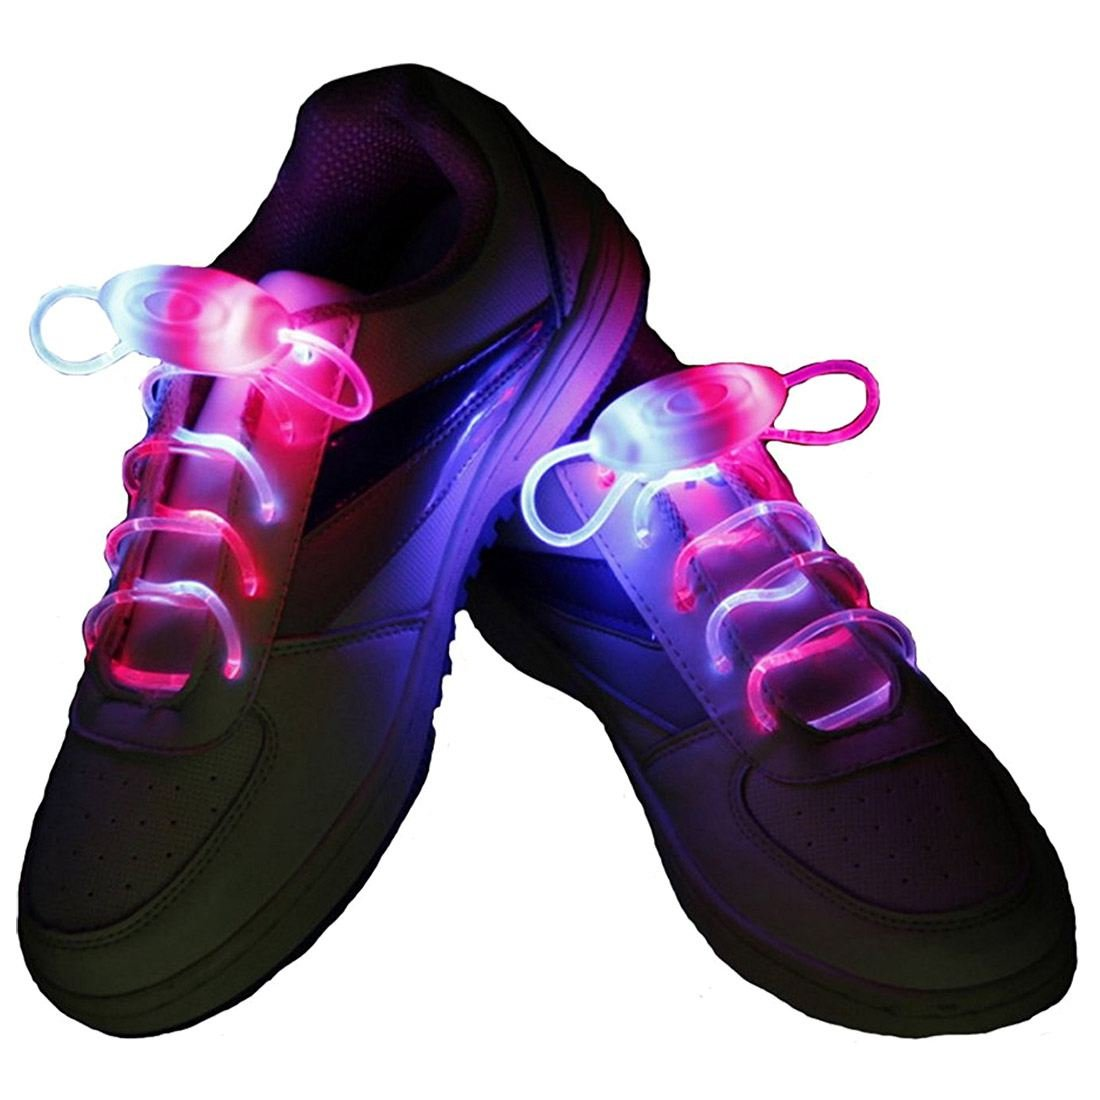 LED Cordones - SODIAL(R) Intermitente Bright LED Cordones de los Zapatos Cordones Luminosos de 80cm Amarillo rojo 095545A4